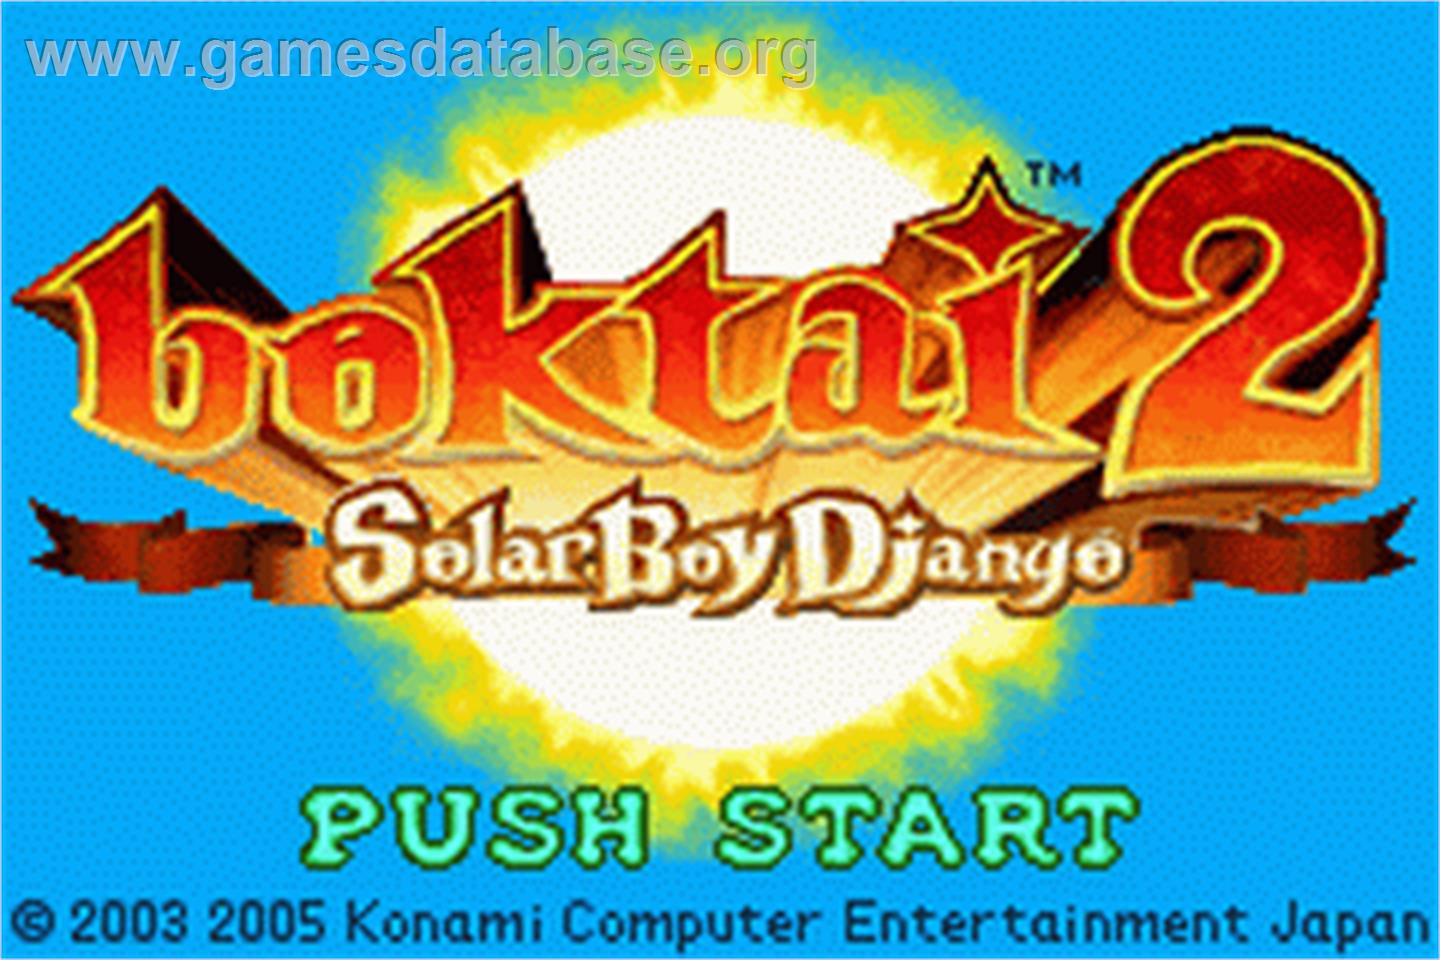 Boktai 2: Solar Boy Django - Nintendo Game Boy Advance - Artwork - Title Screen